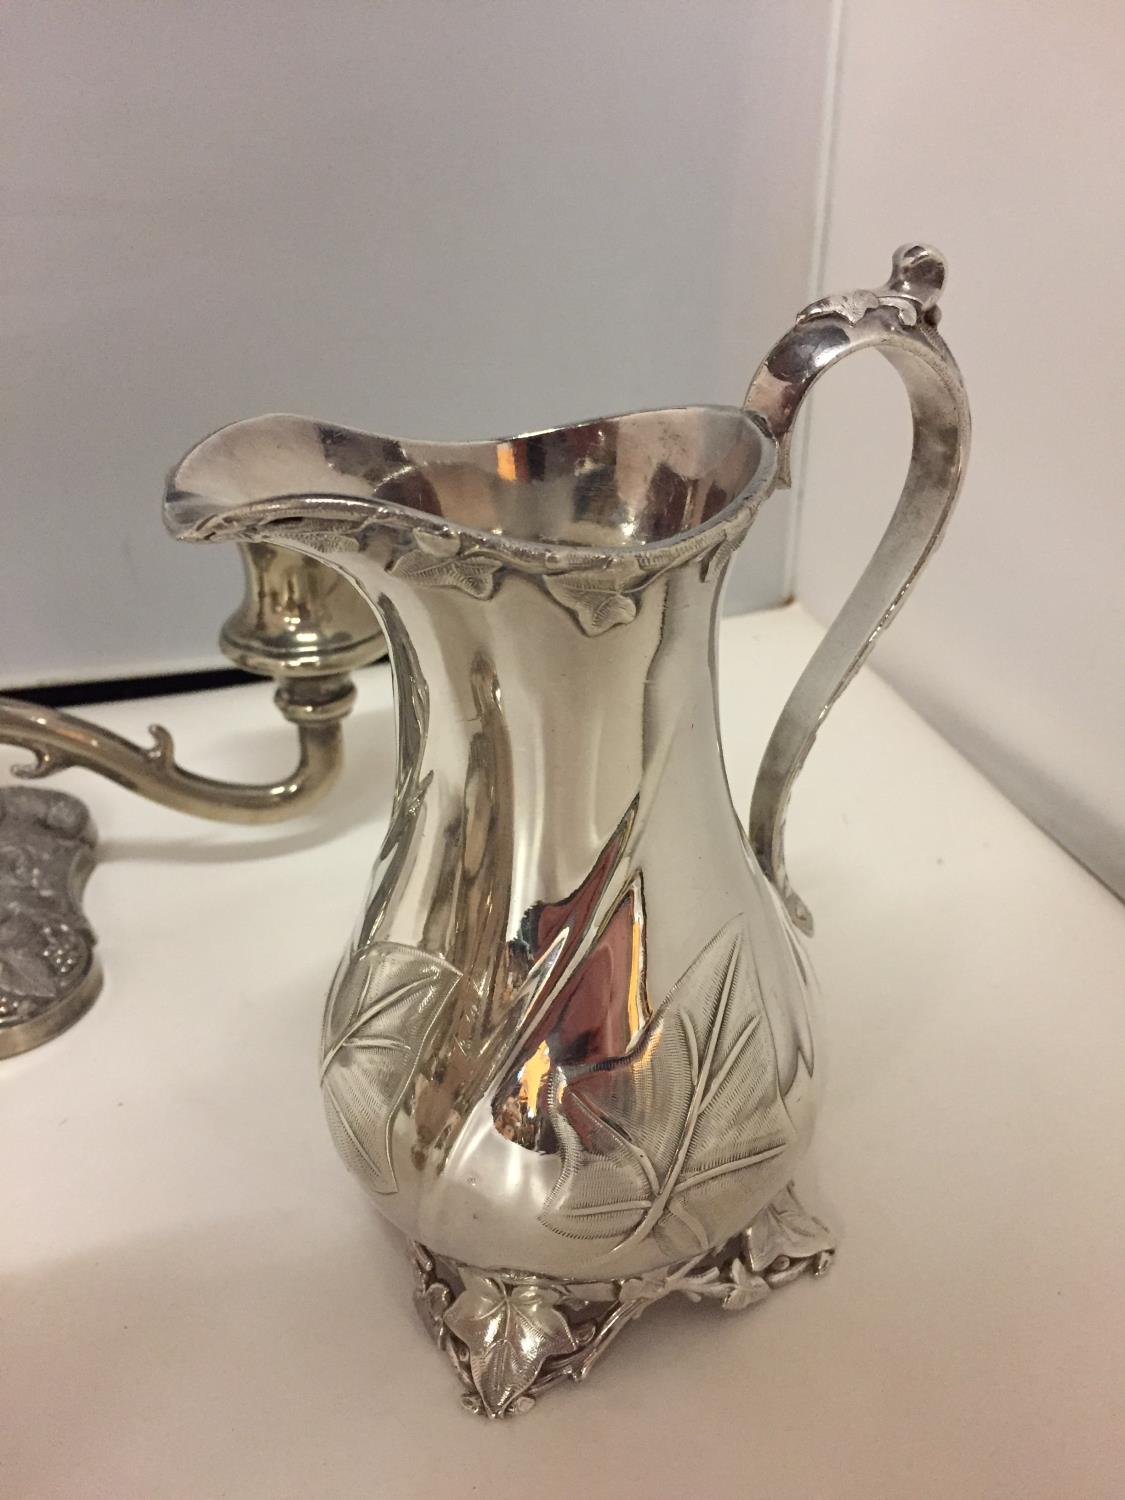 A SELECTION OF SILVER PLATED ITEMS TO INCLUDE A JUG, TWIN HANDLED VESSEL, CANDELABRA ETC - Image 7 of 10